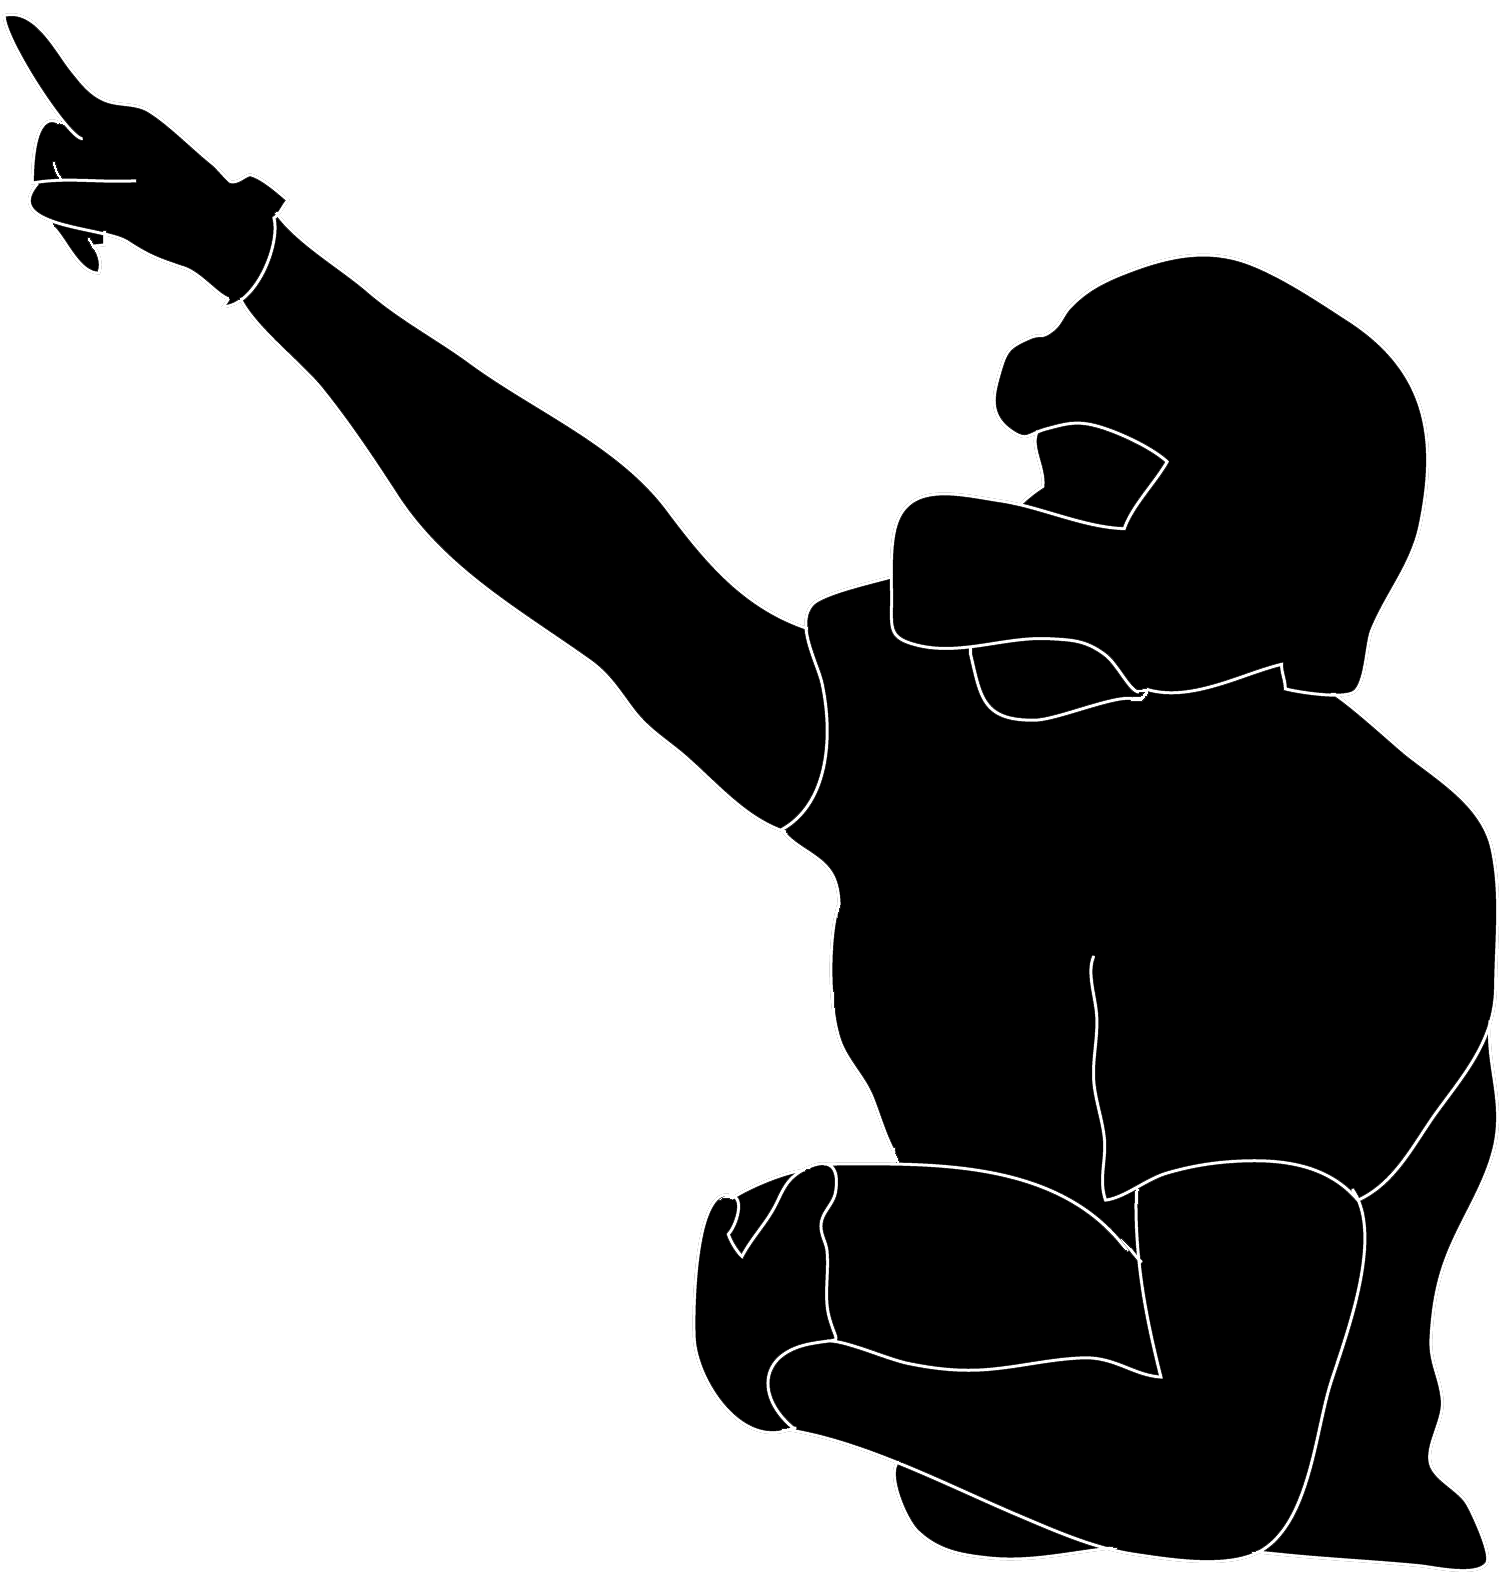 American football jersey clipart image freeuse download Nfl Silhouette at GetDrawings.com | Free for personal use Nfl ... image freeuse download